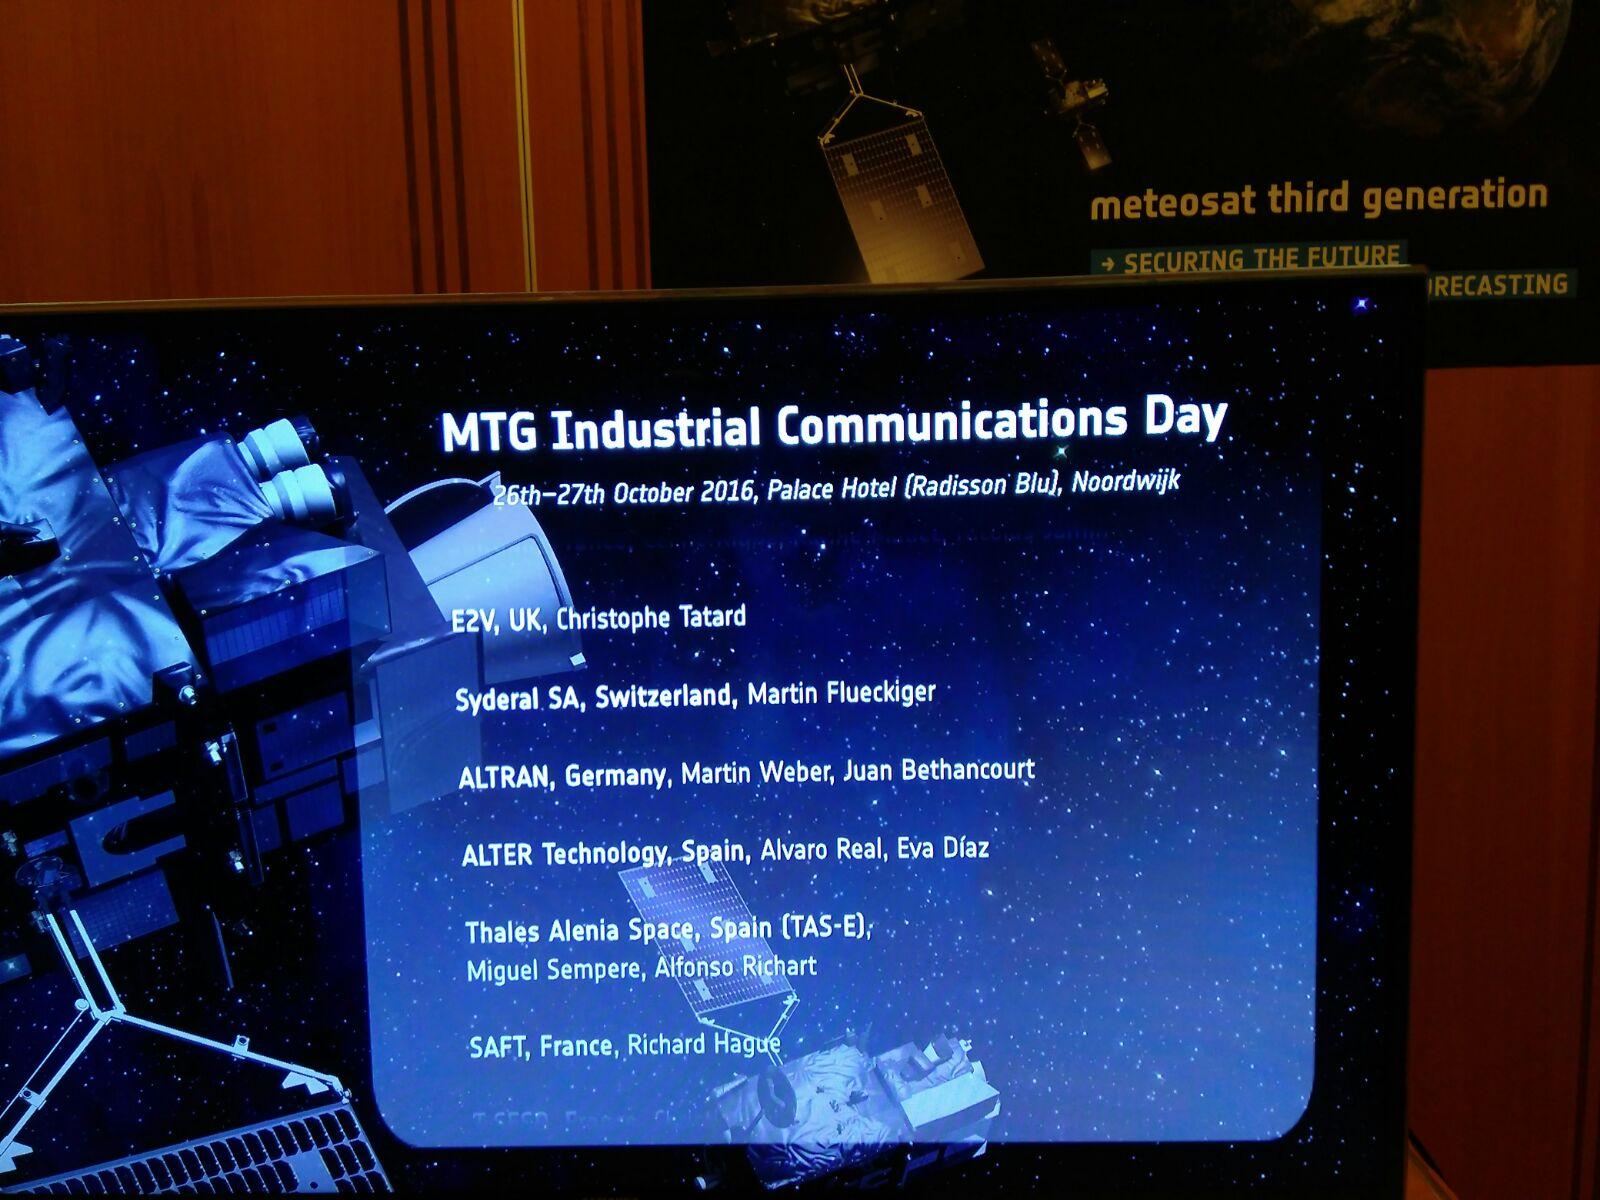 mtg industrial communications day